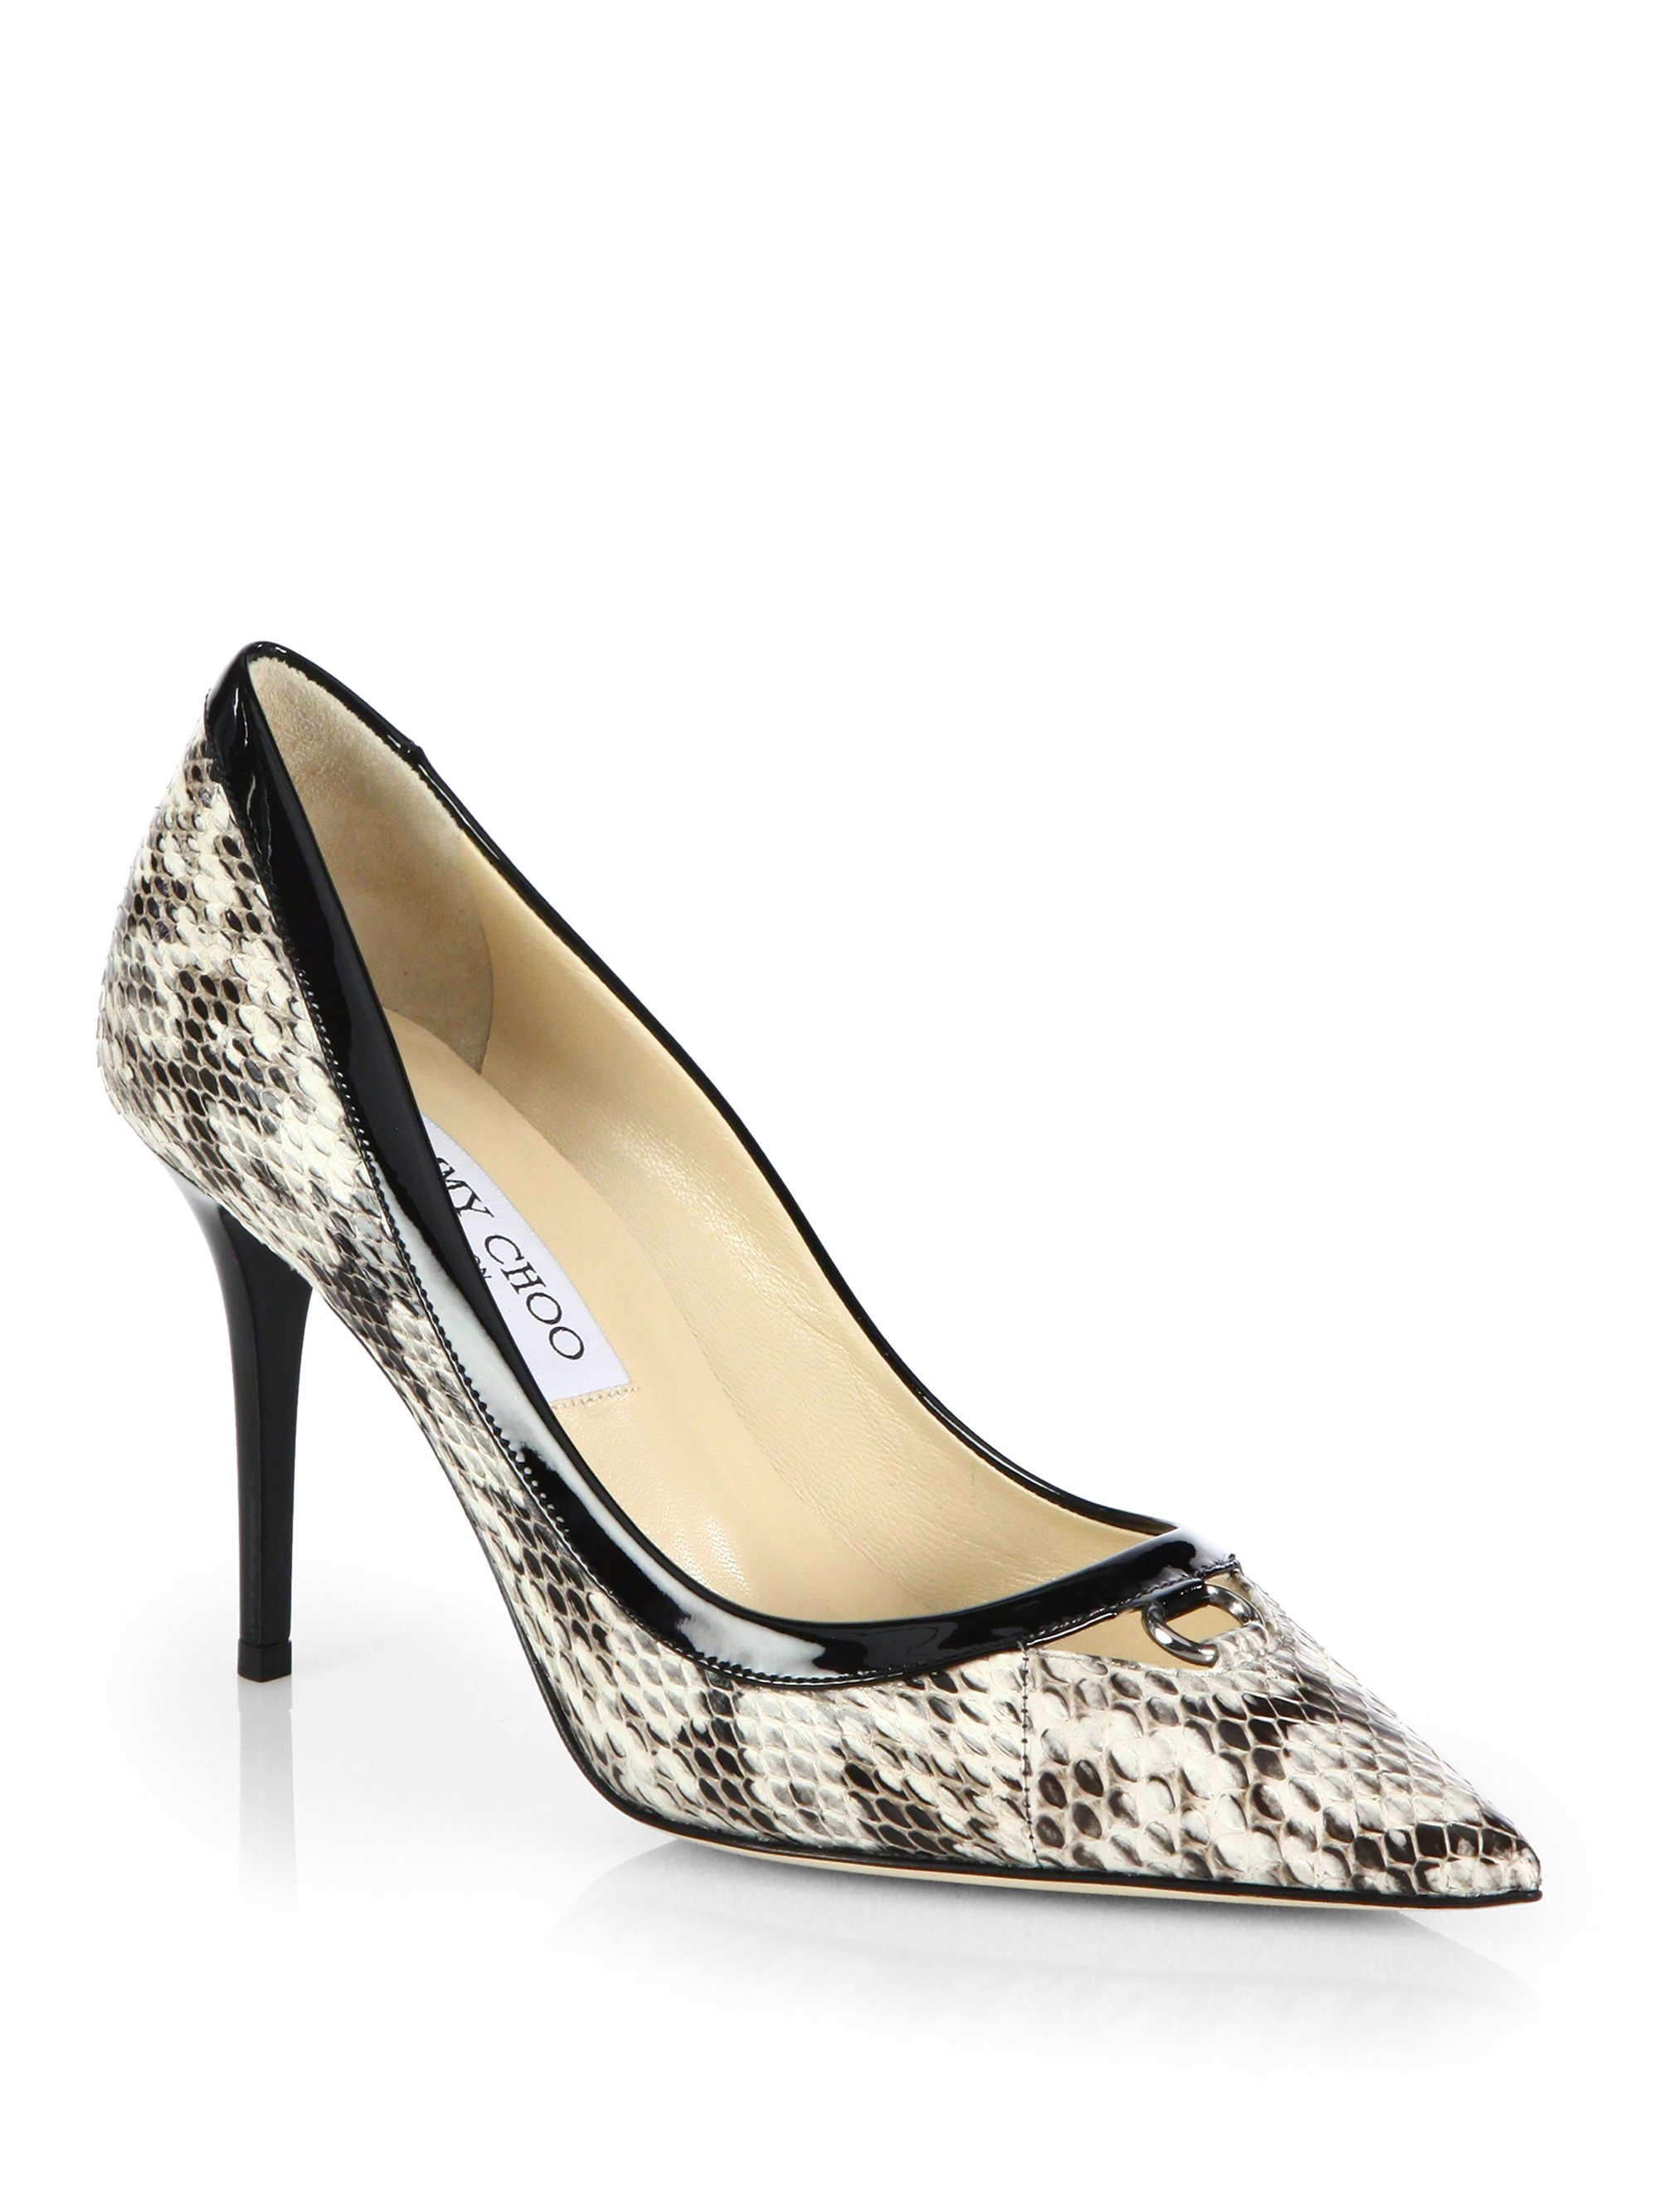 90925b29e7 Jimmy Choo Hype Snakeskin & Patent Leather Point Toe Pumps in Black ...